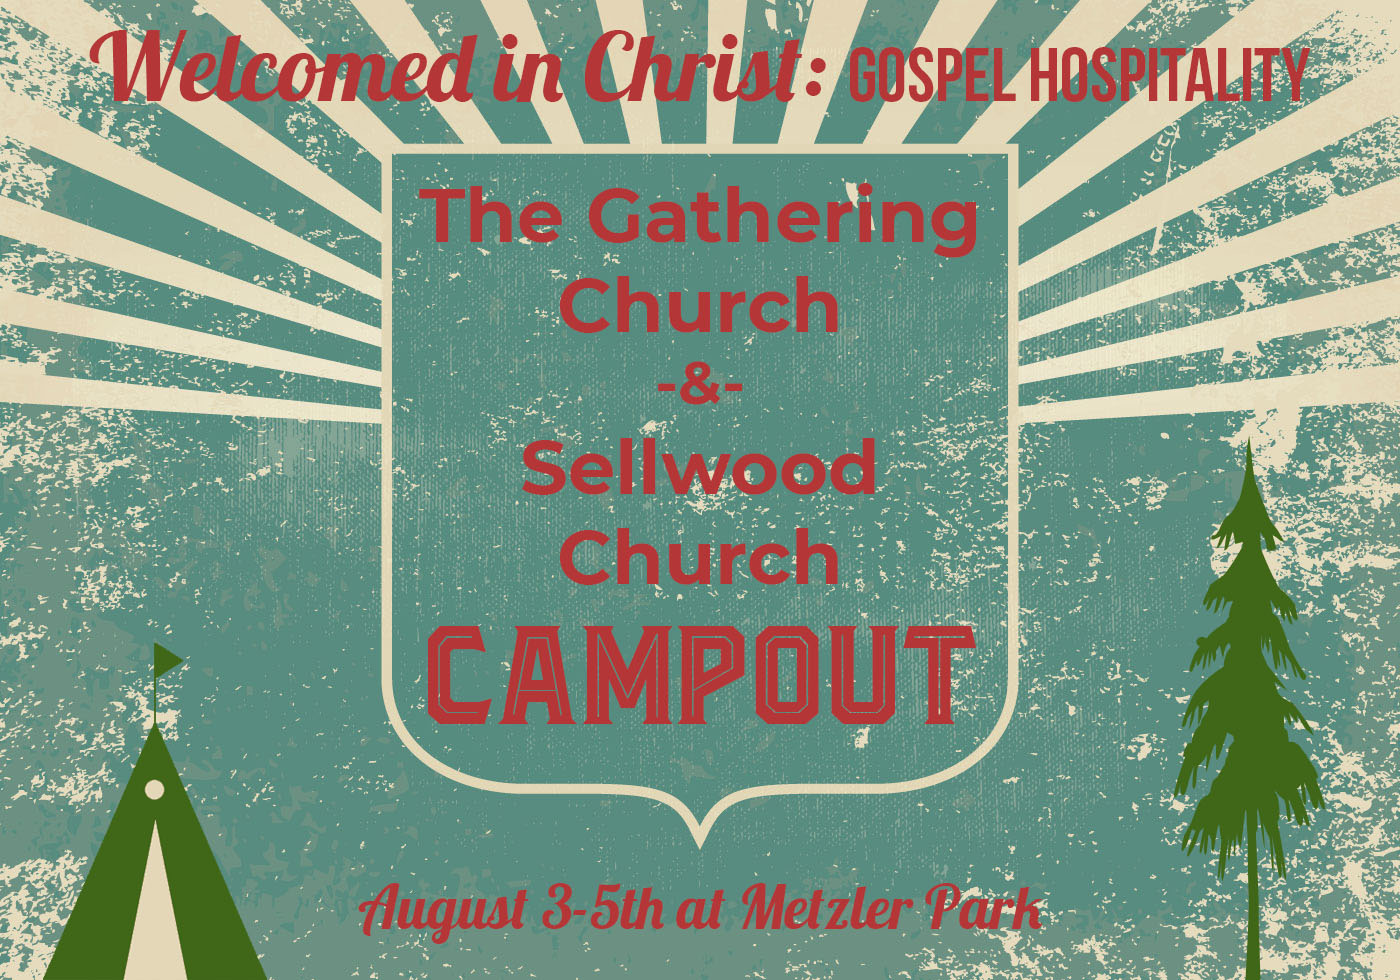 Church campout 18  1